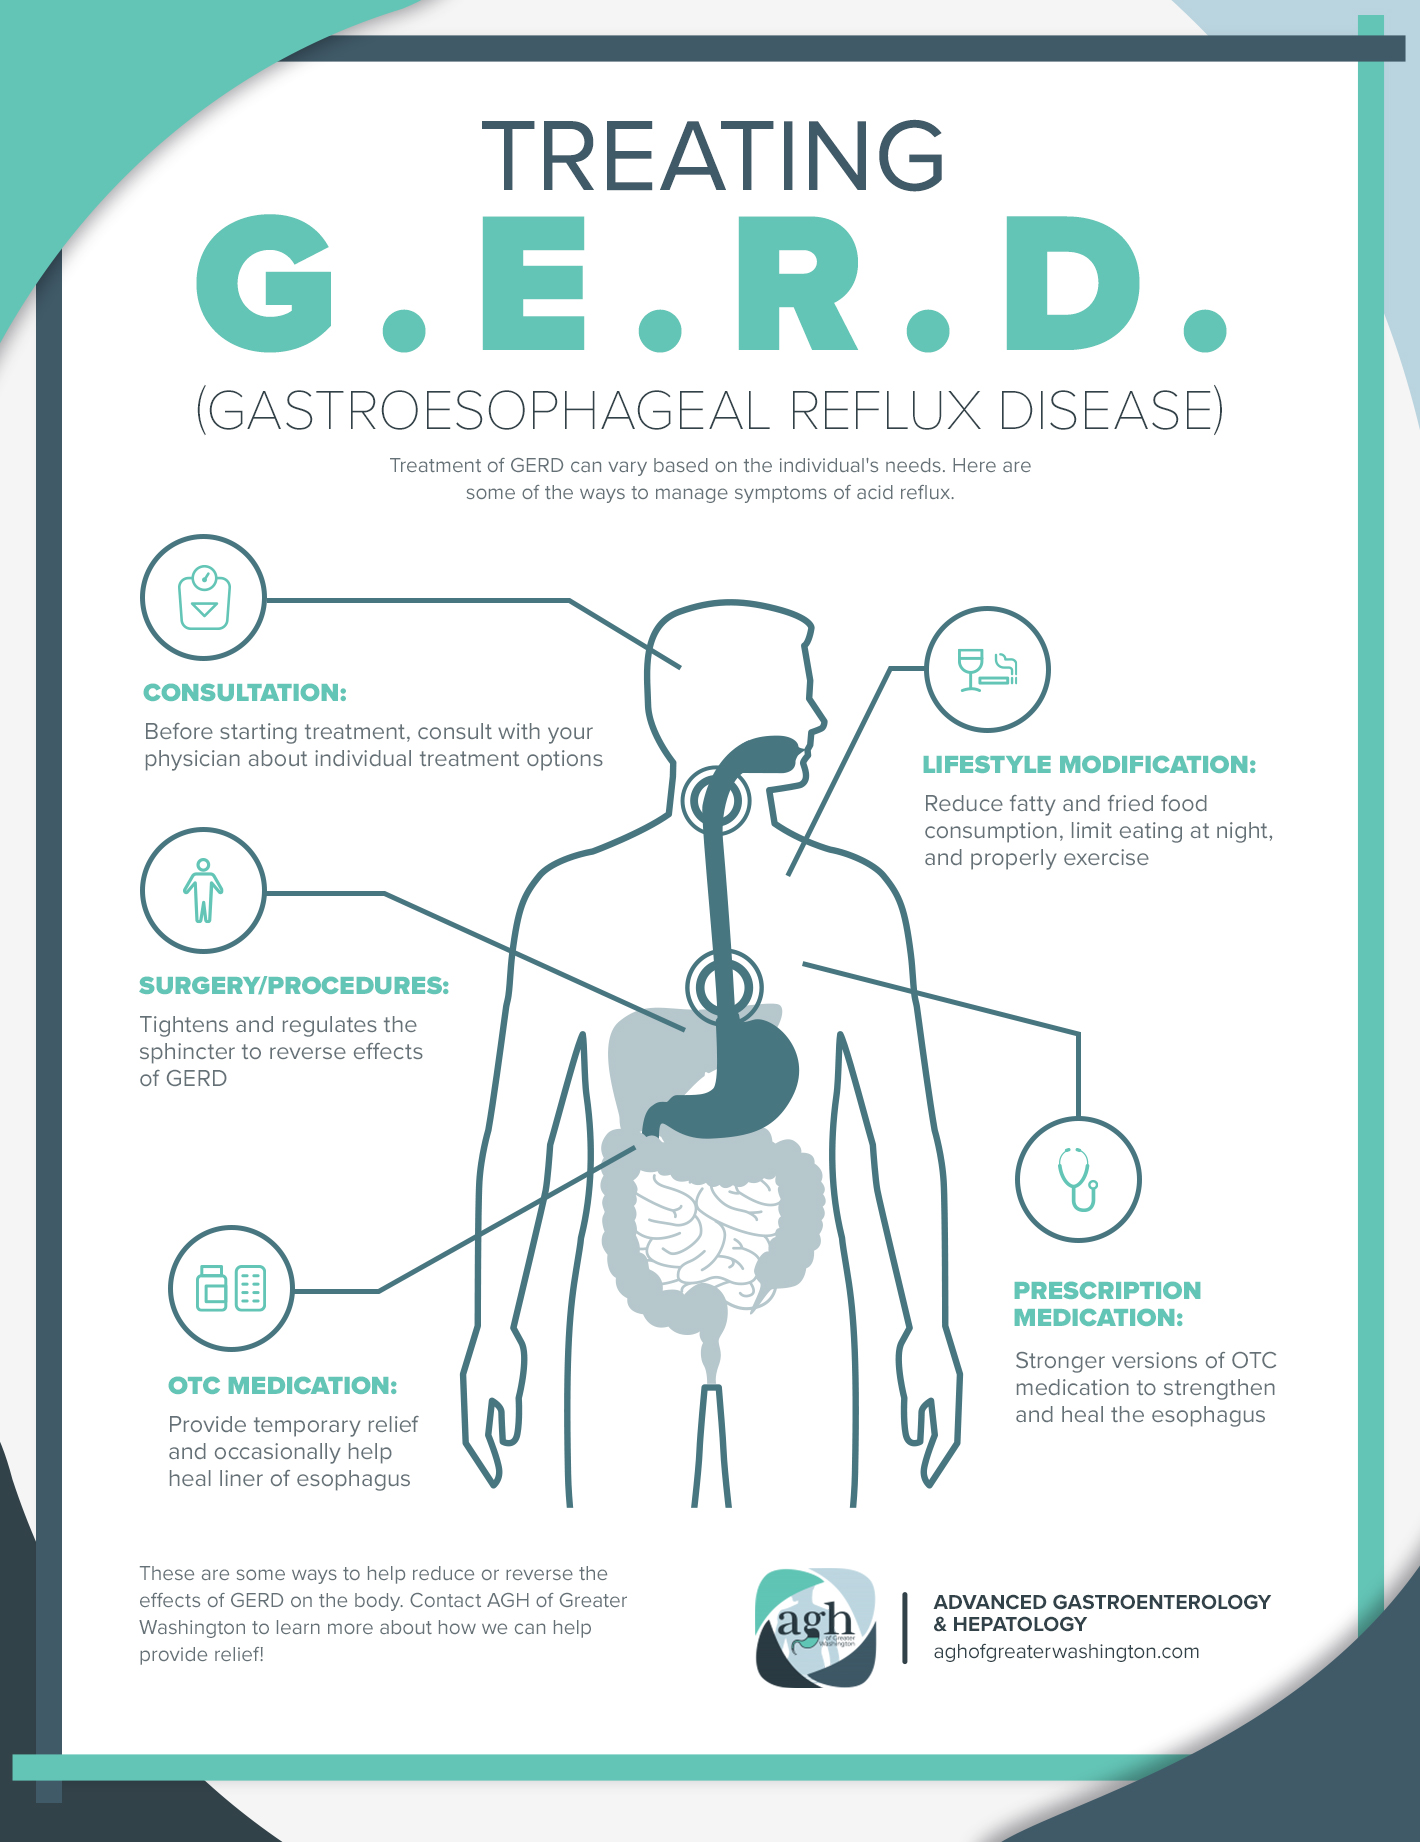 Treating GERD Infographic